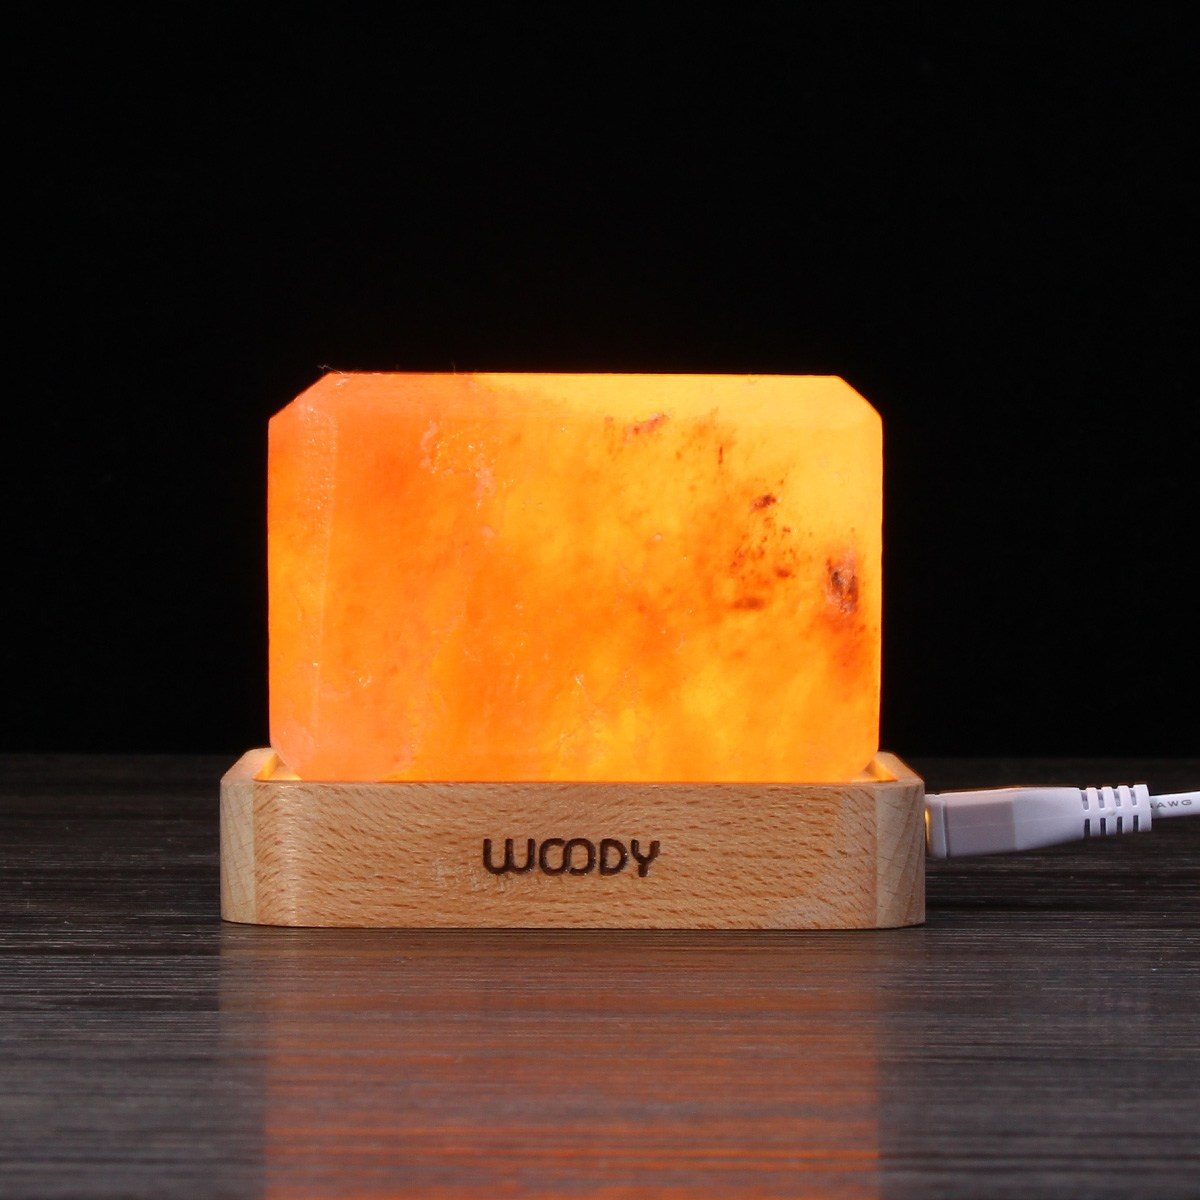 Crystal Himalayan Salt Lamp Air Purifier Night Light USB Power Desk Lamp Bedside Bar Coffee Shop Home Decor Warm White Lighting